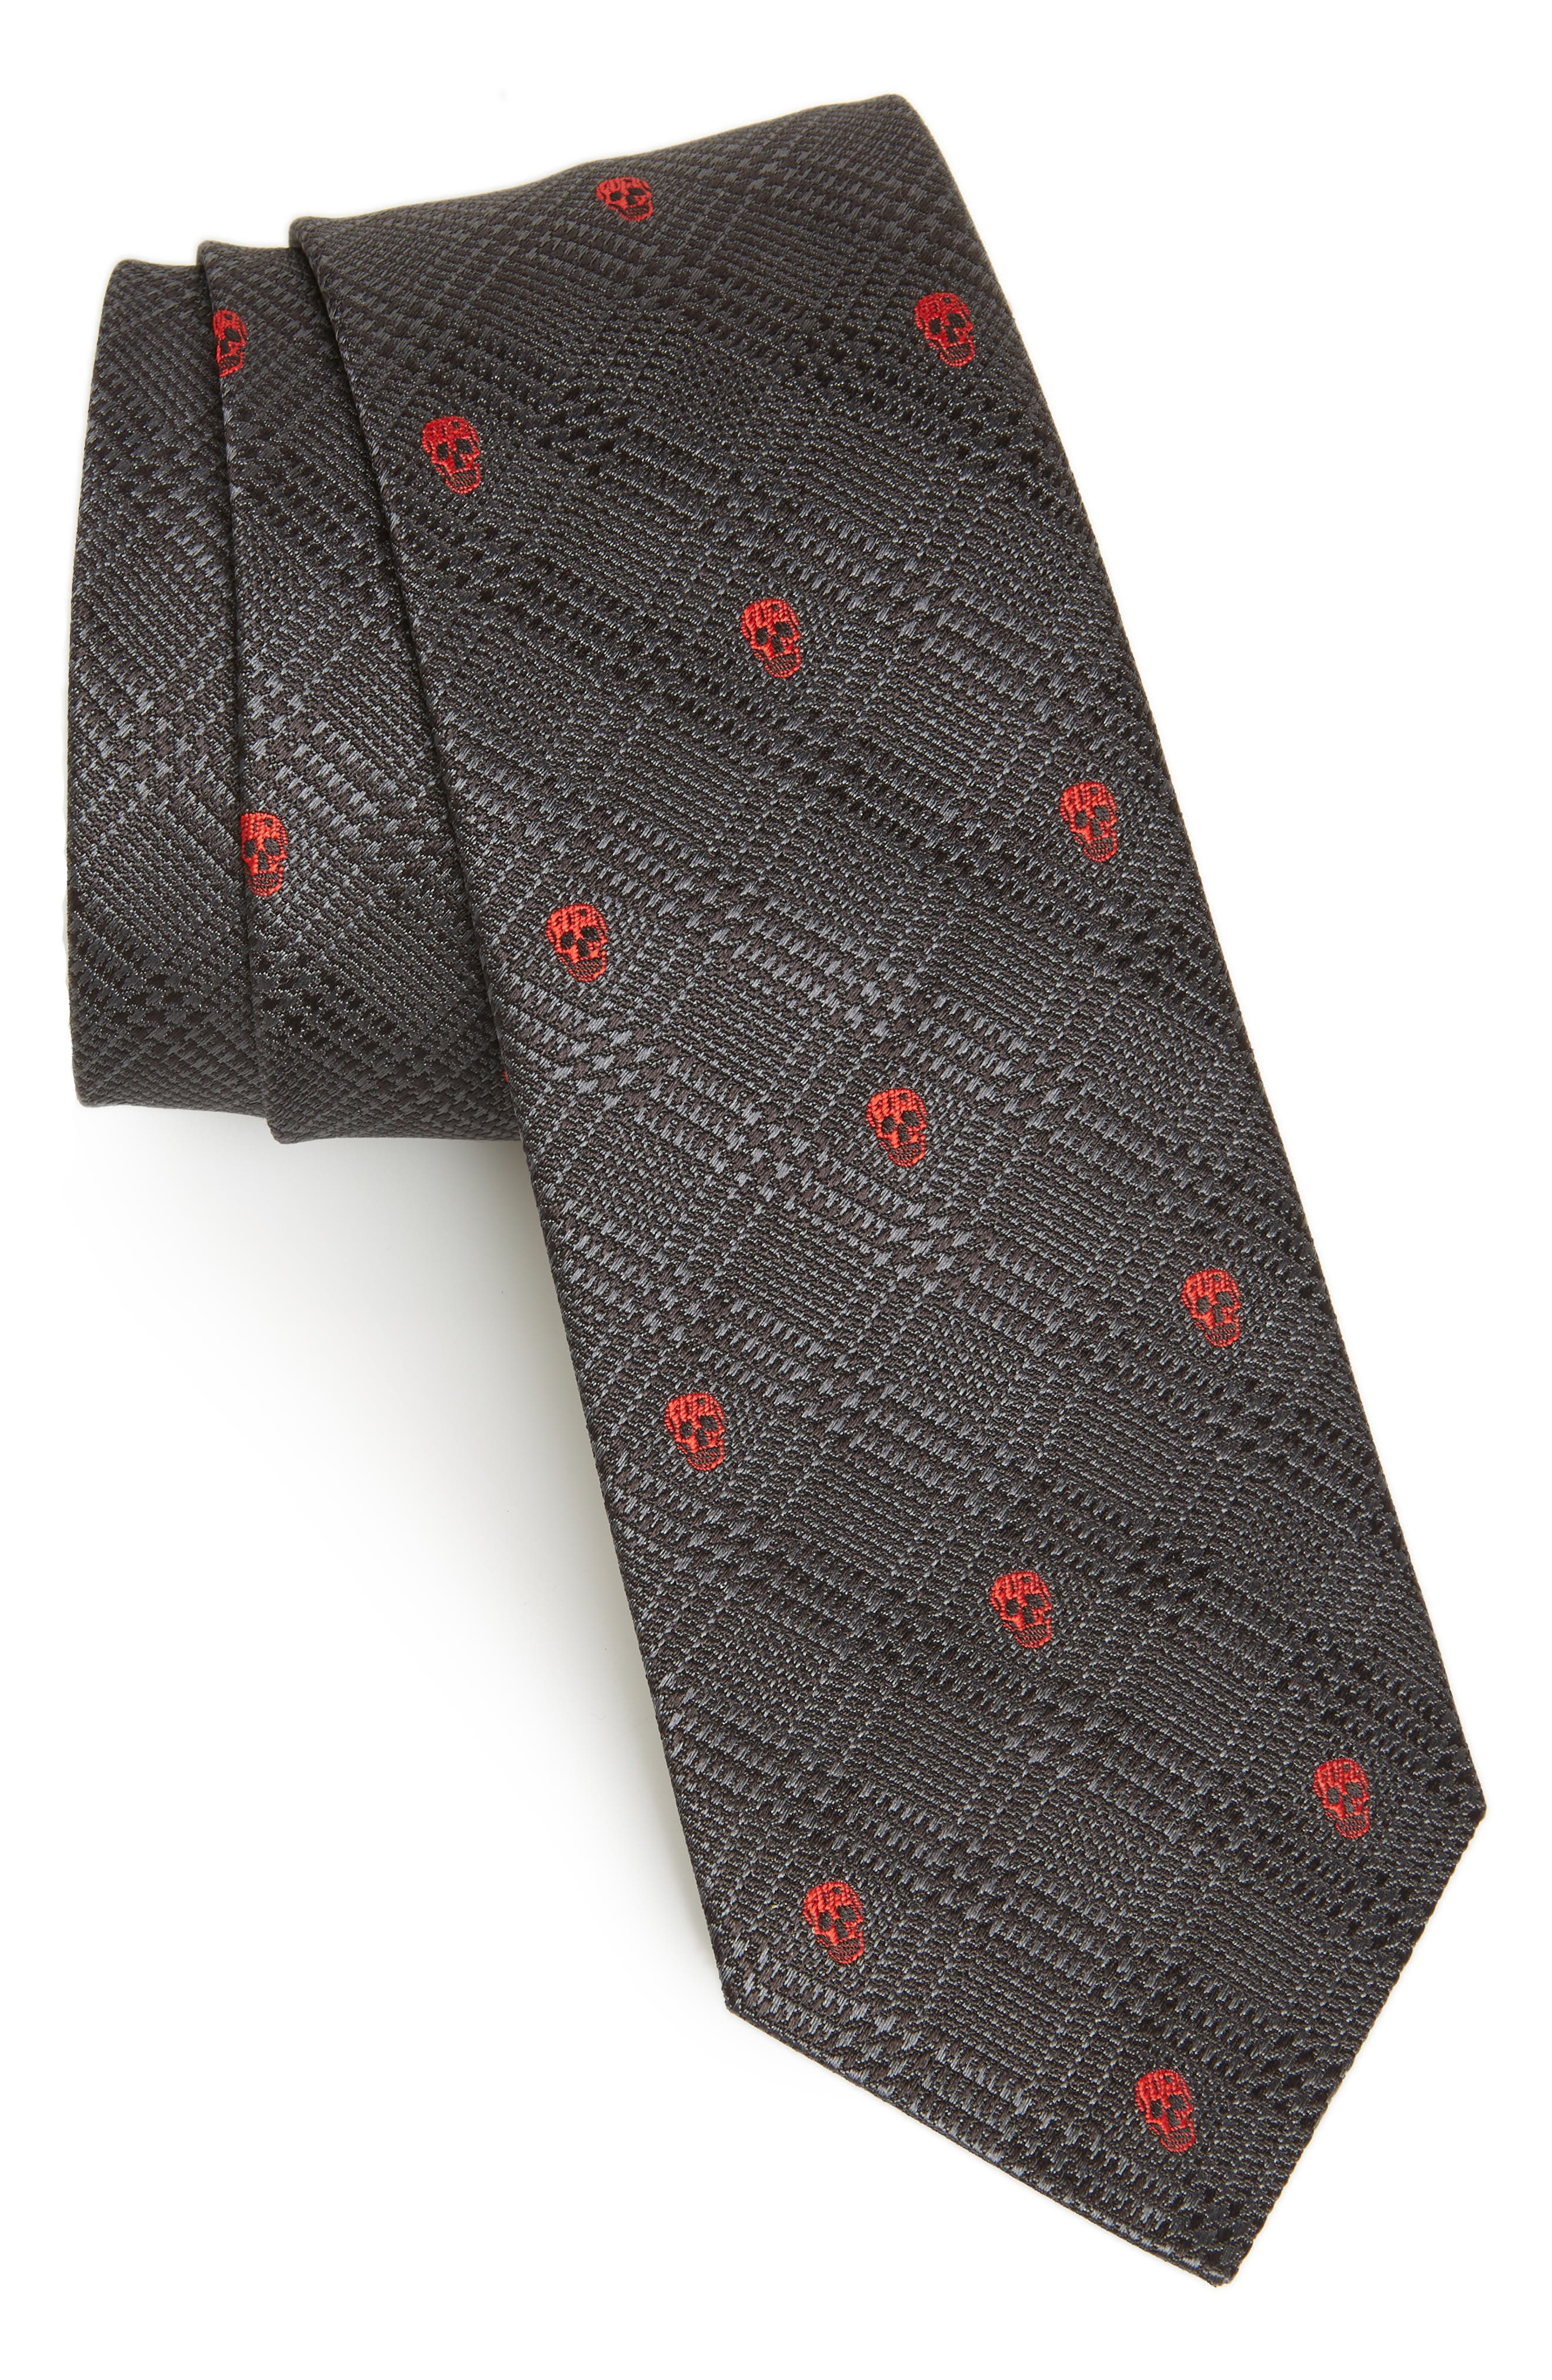 ALEXANDER MCQUEEN, Woven Silk Tie, Main thumbnail 1, color, BLACK AND RED